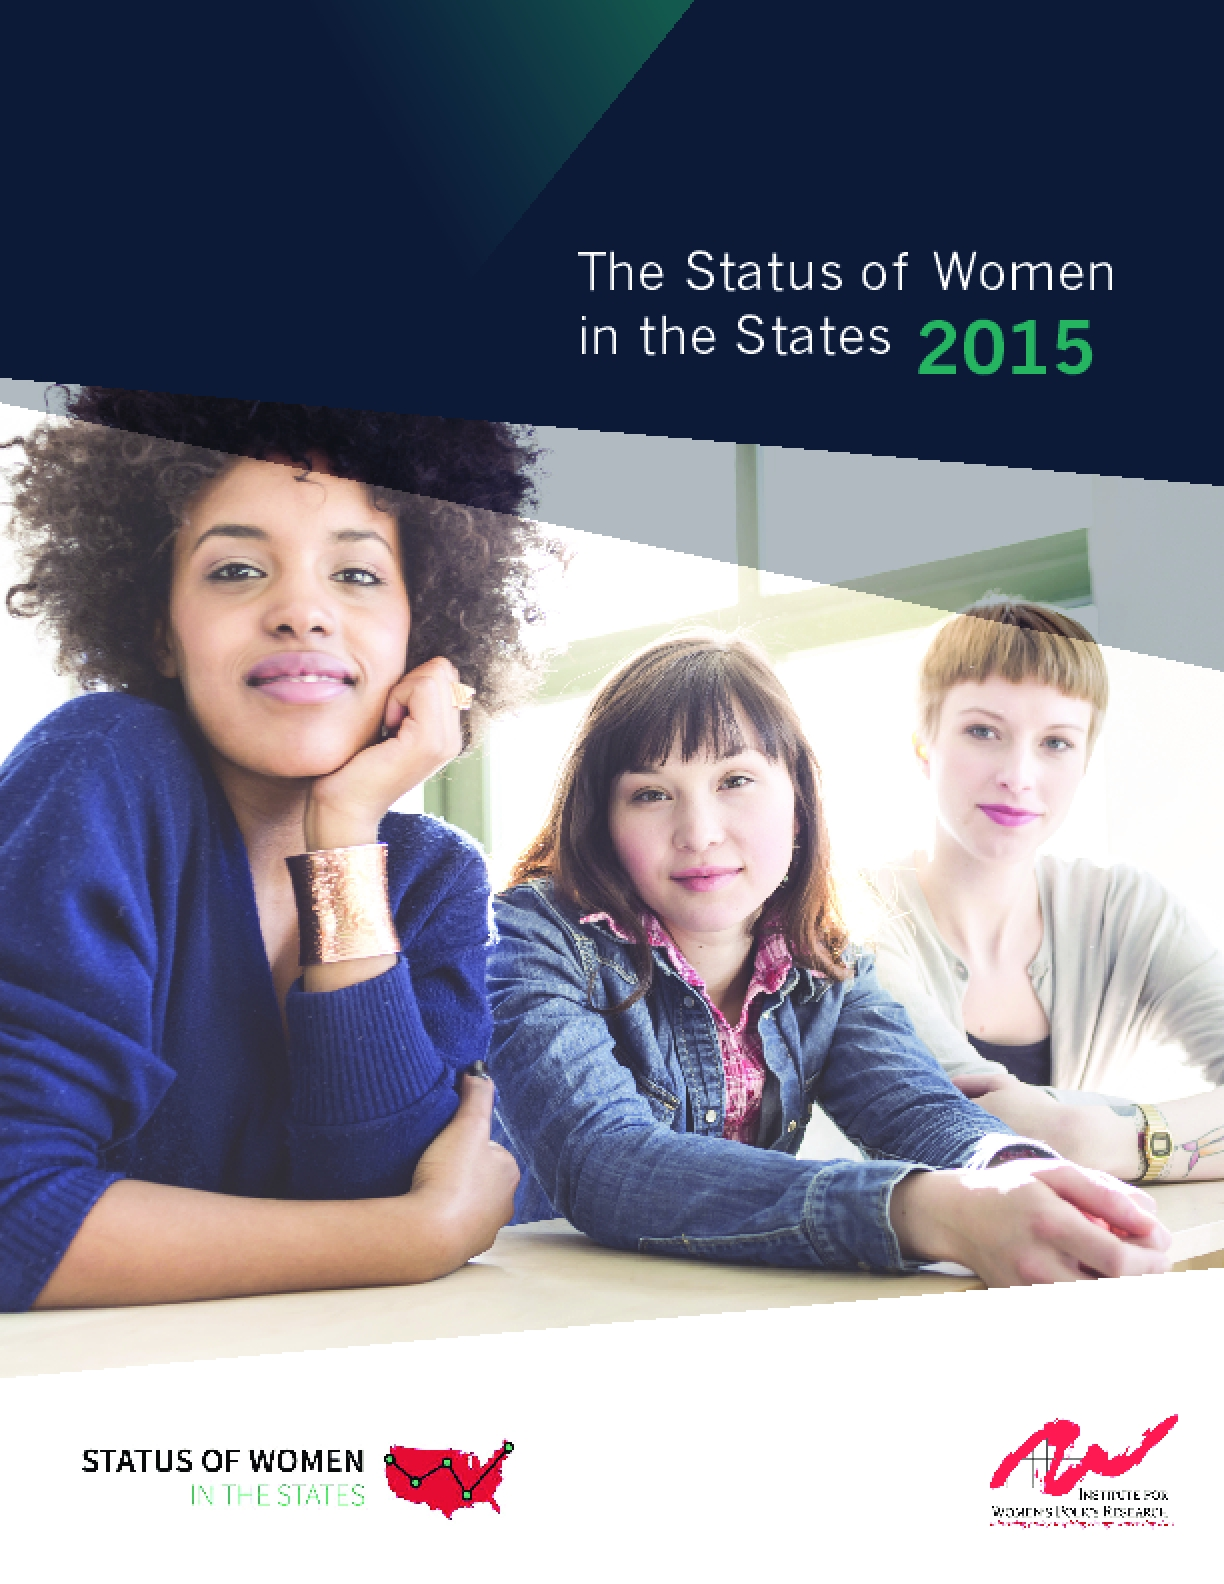 The Status of Women in the States 2015